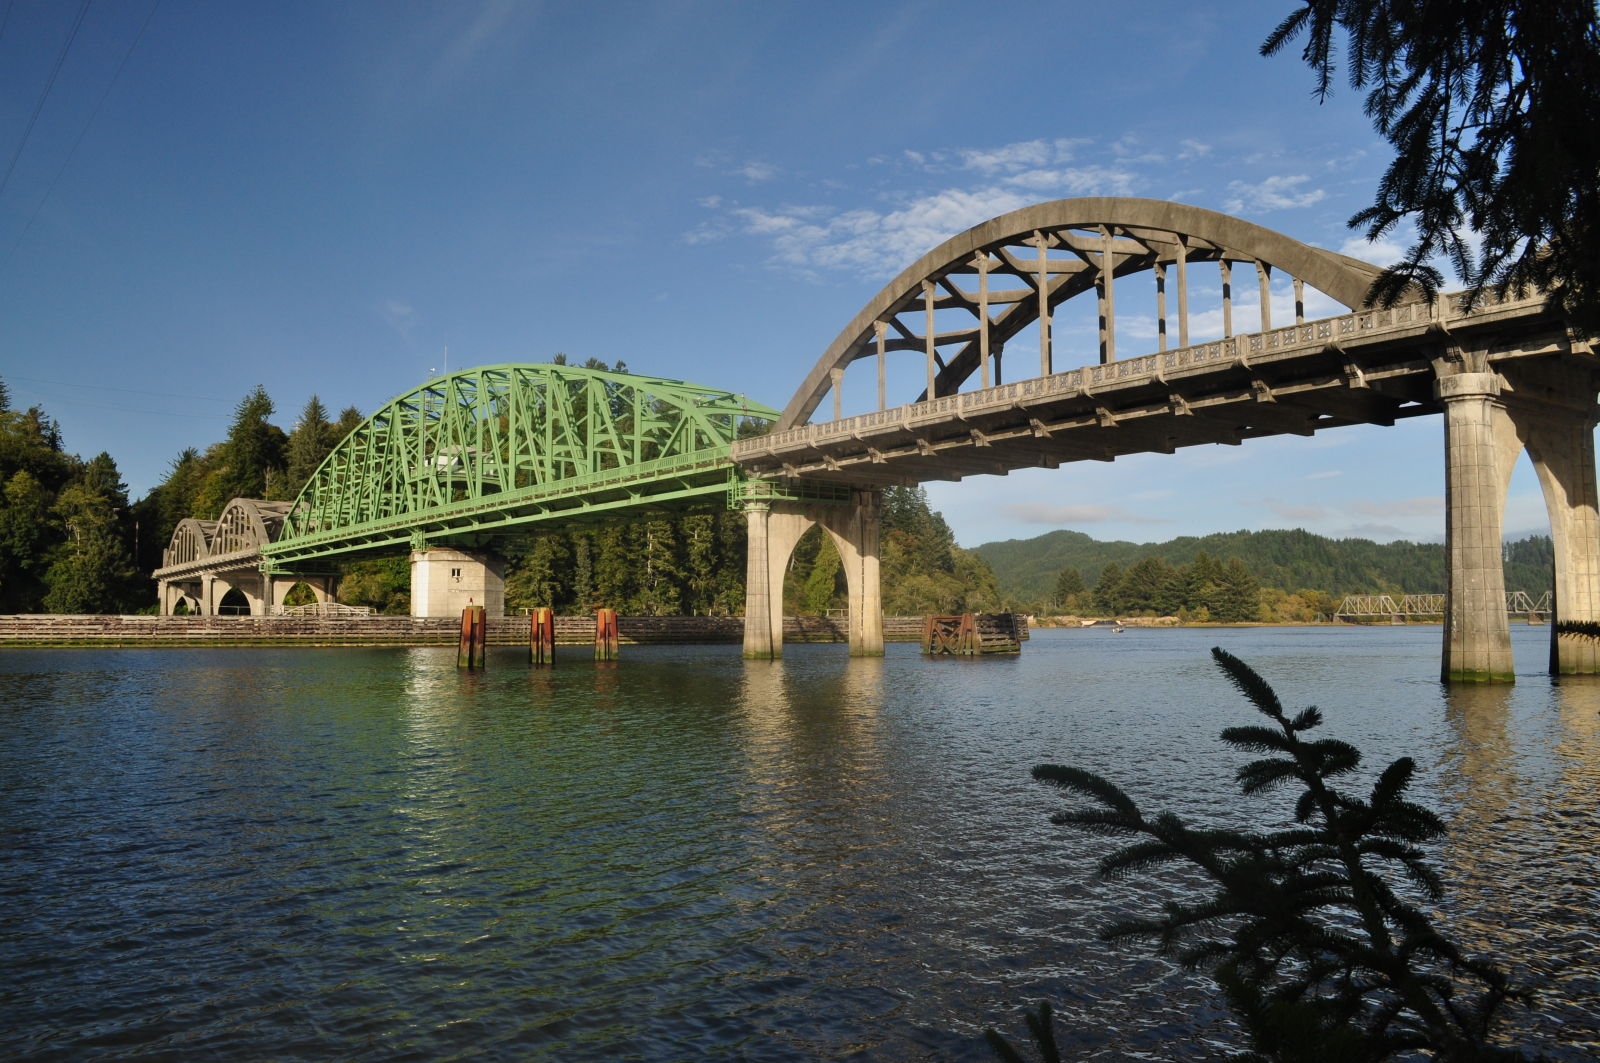 Bridgehuntercom Umpqua River Bridge